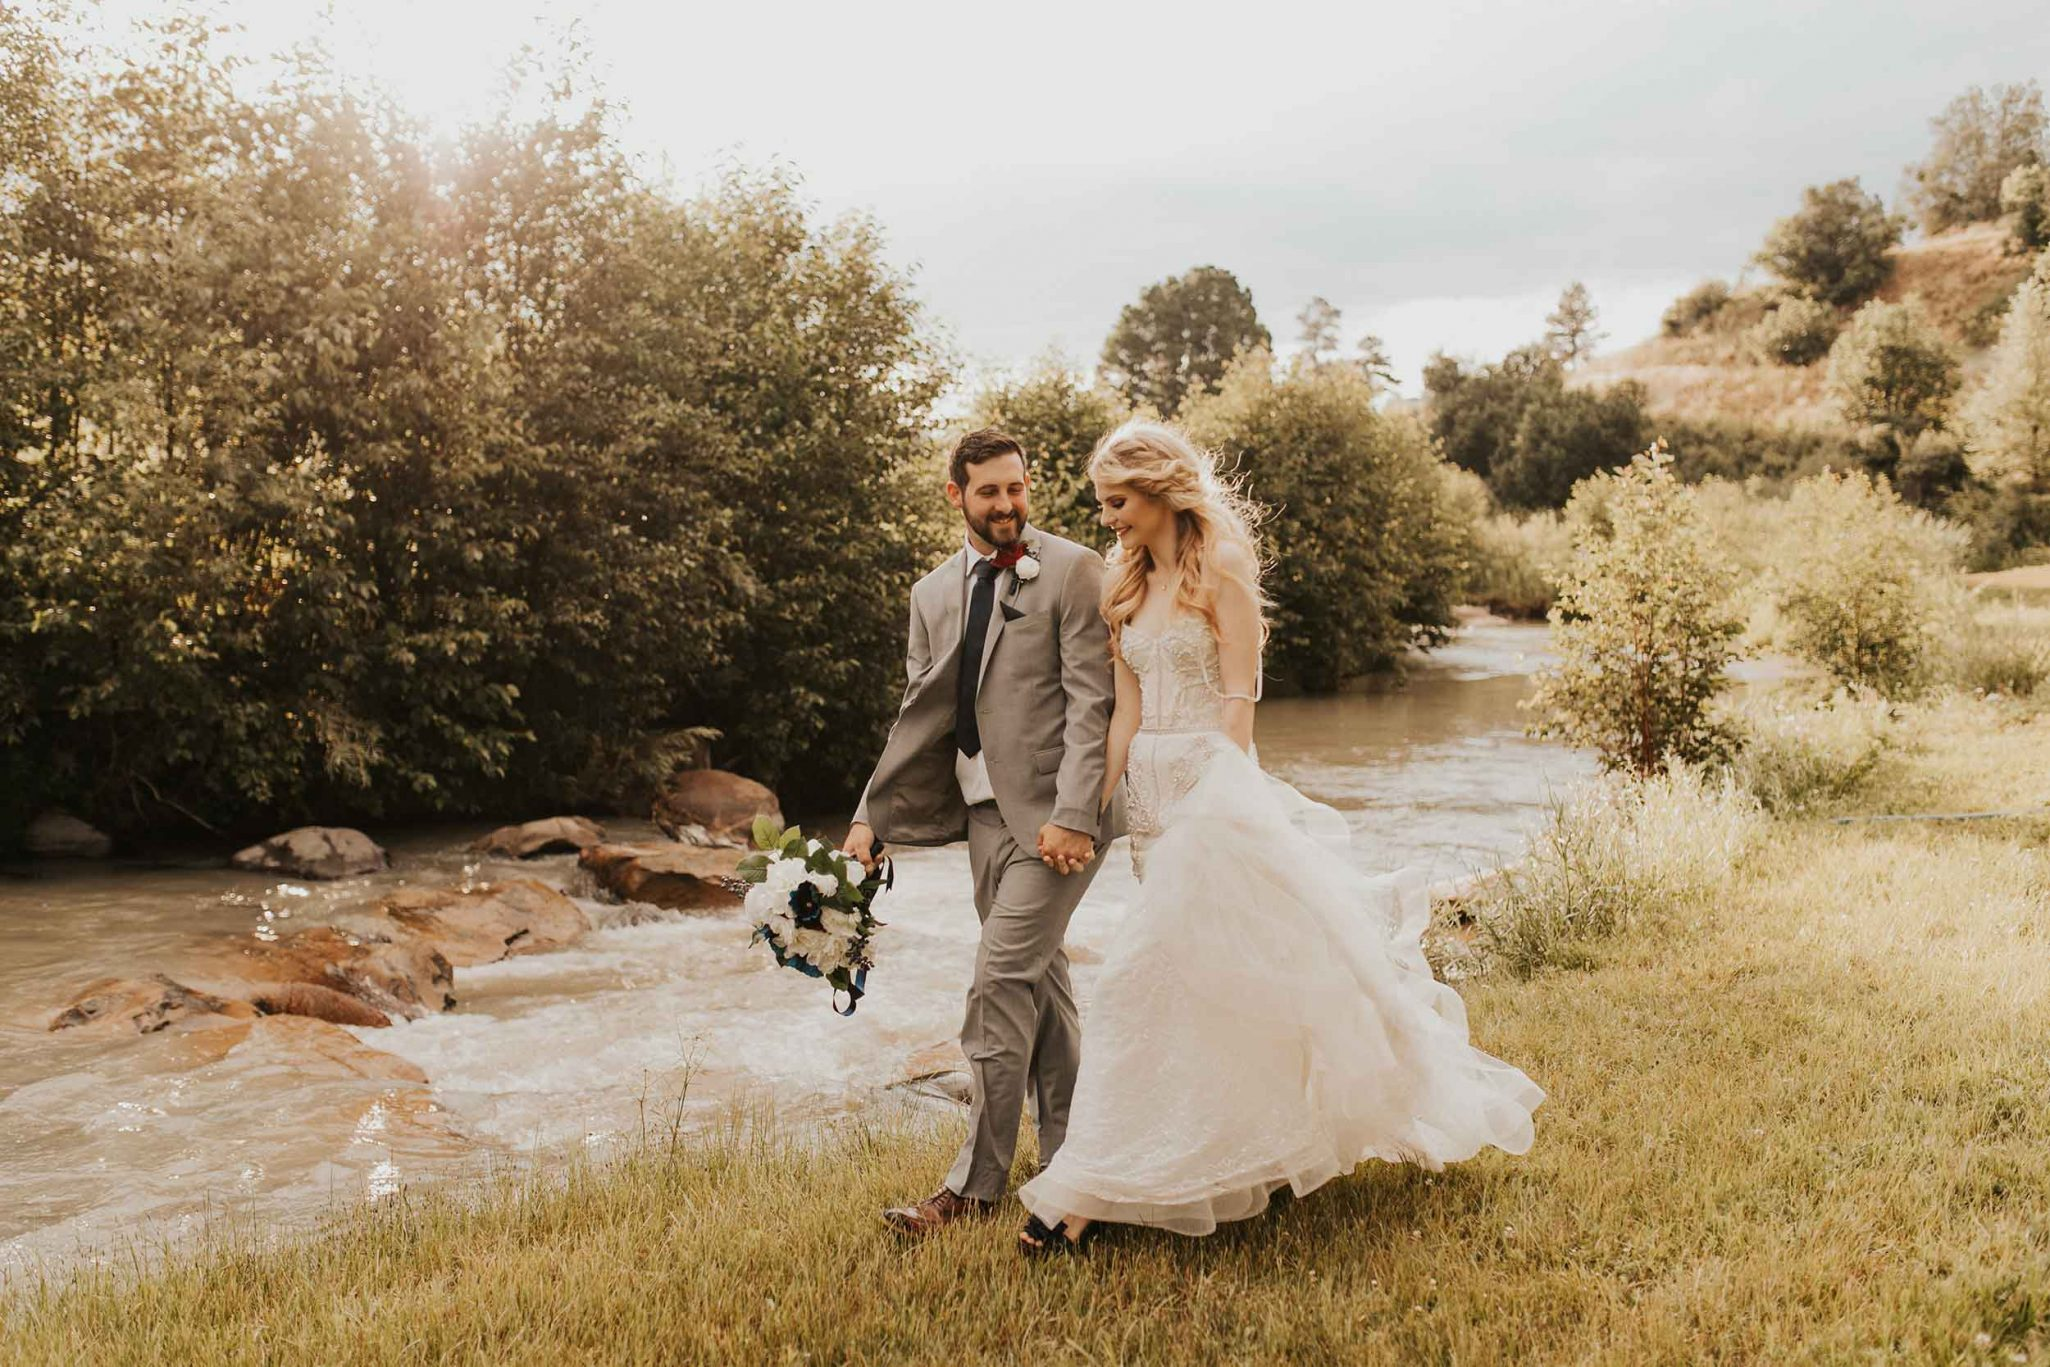 Bride & Groom by the river